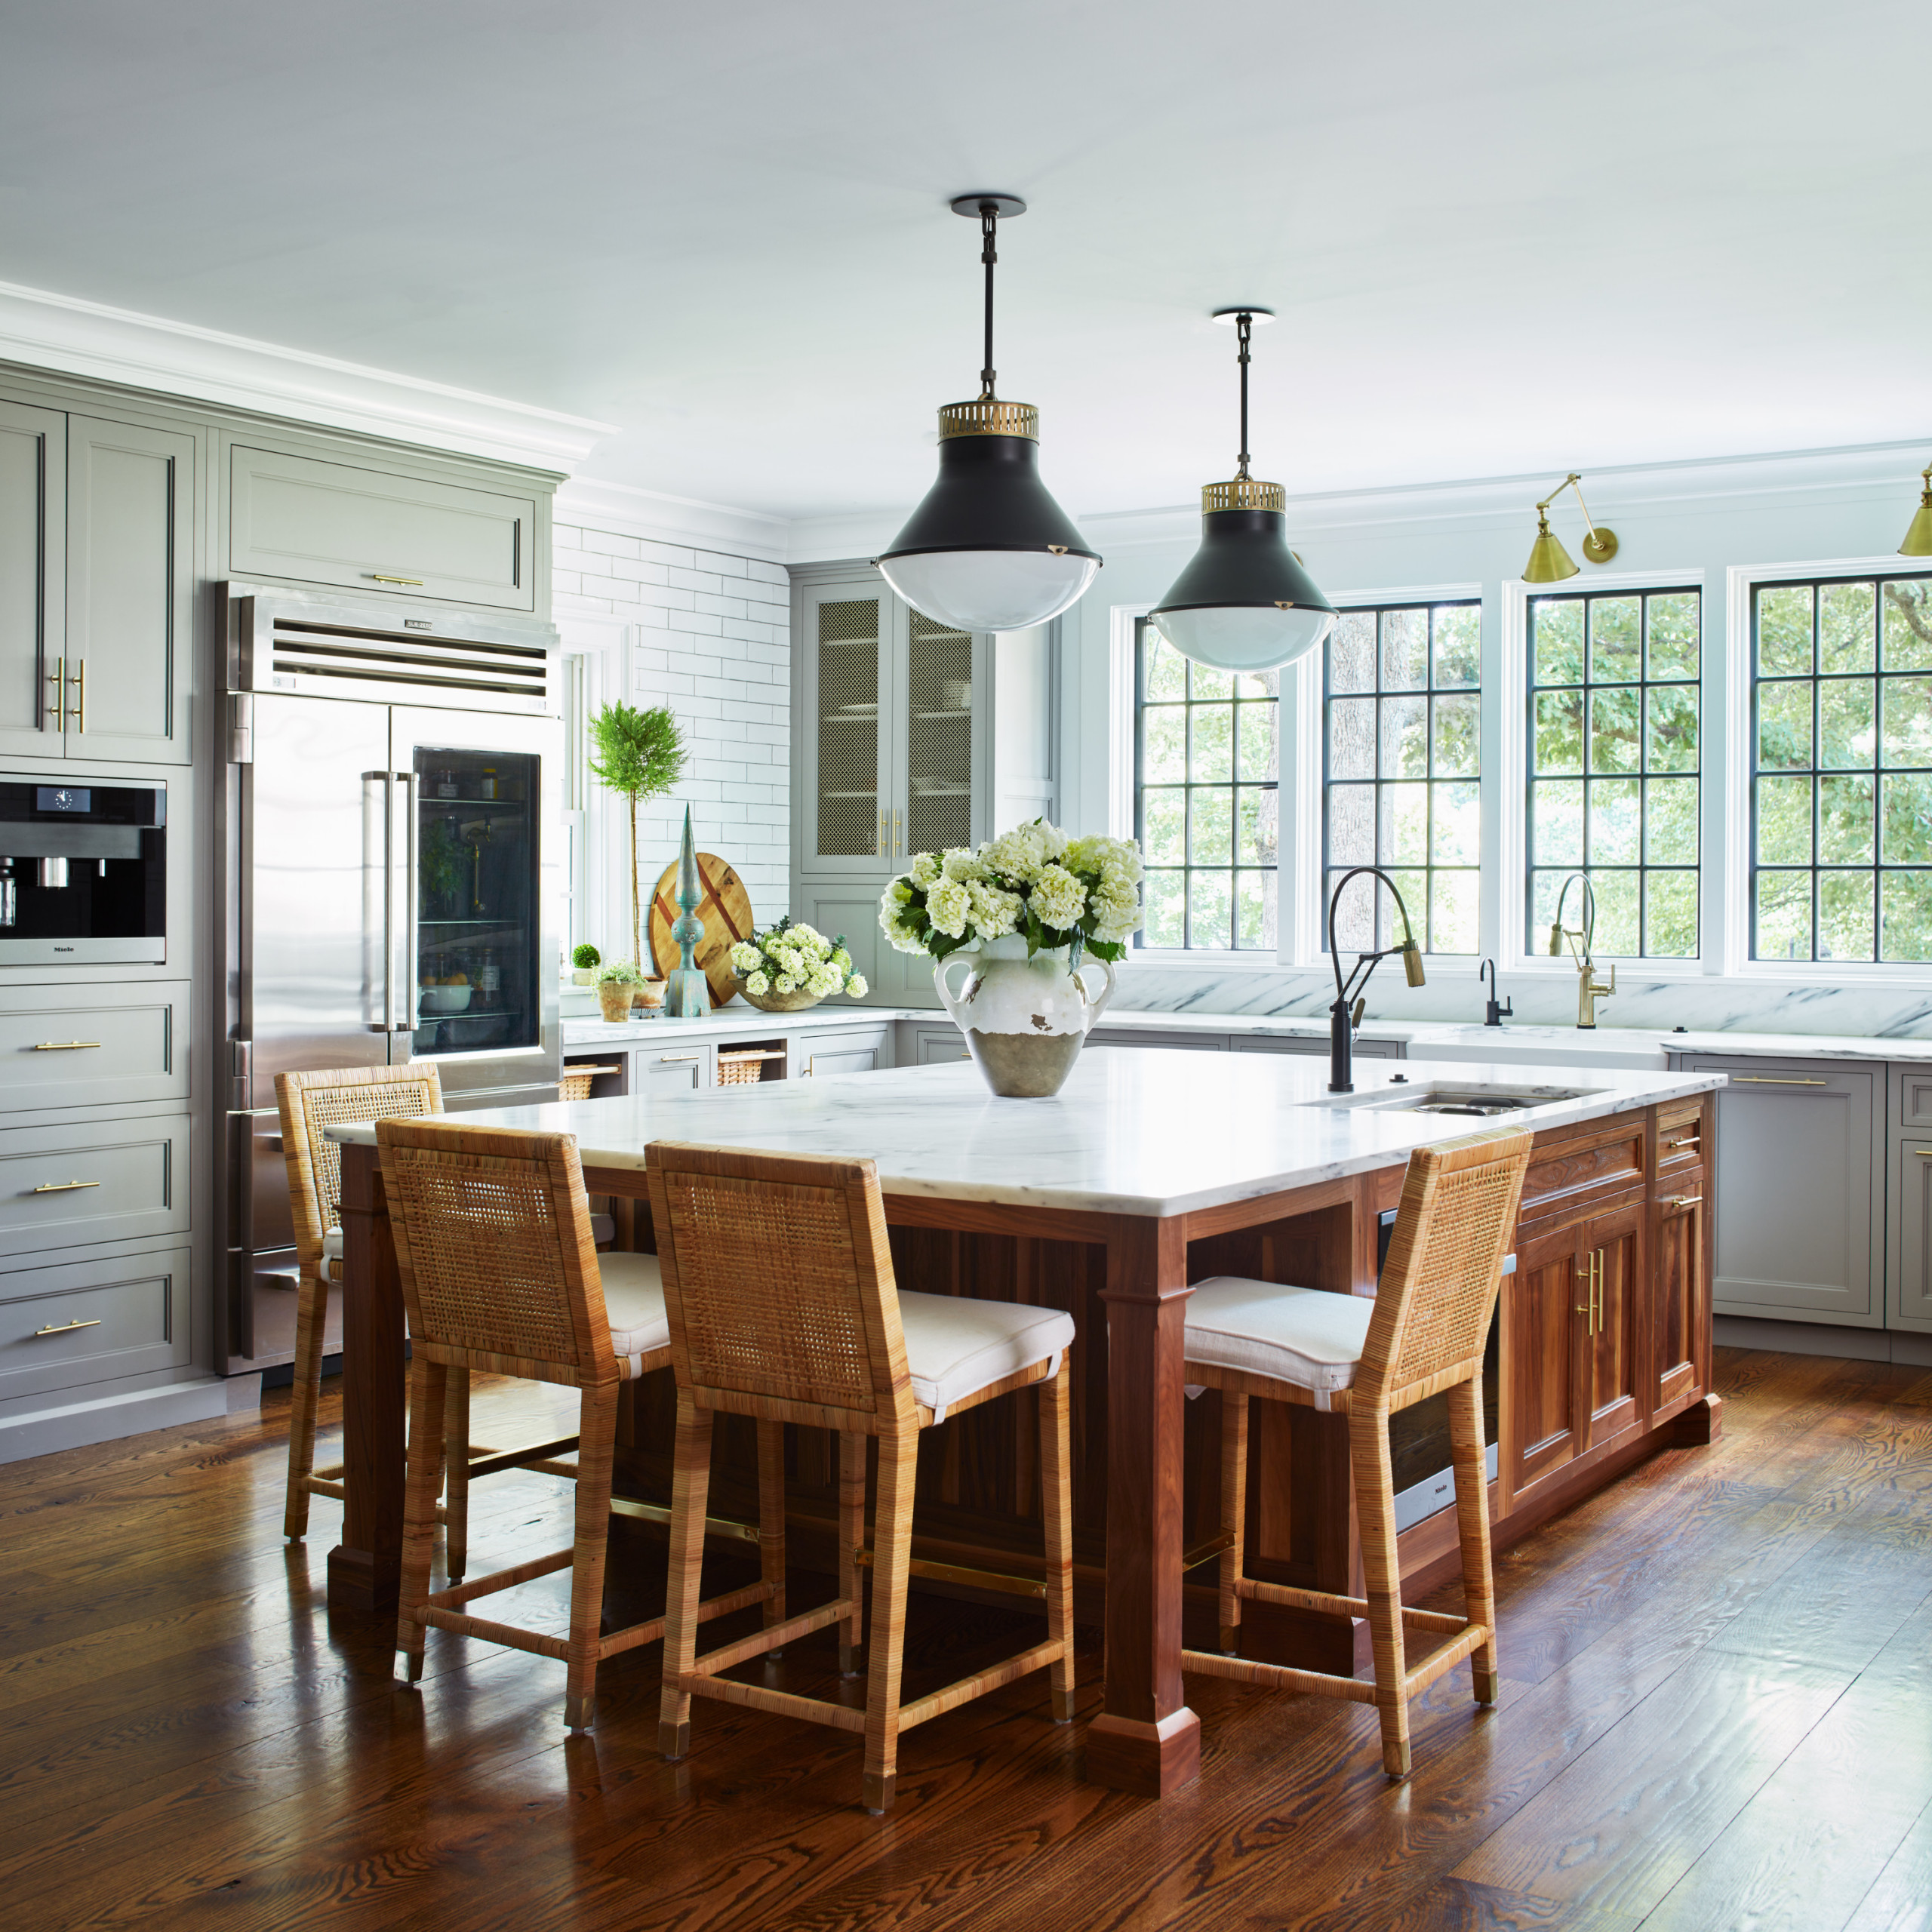 75 Beautiful Farmhouse Kitchen With An Island Pictures Ideas February 2021 Houzz